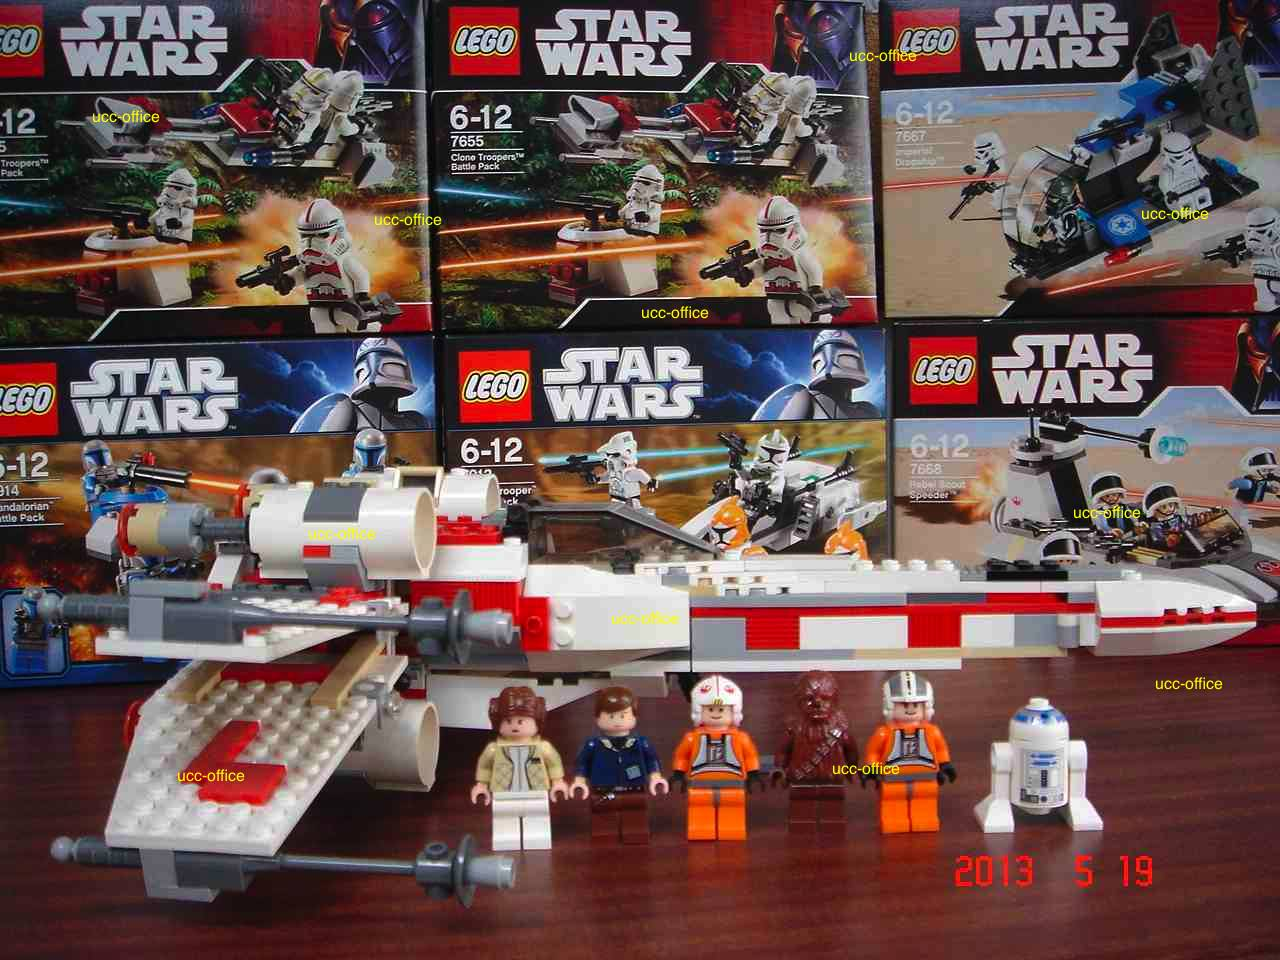 lego_starwars_ucc-office_20130519007.jpg